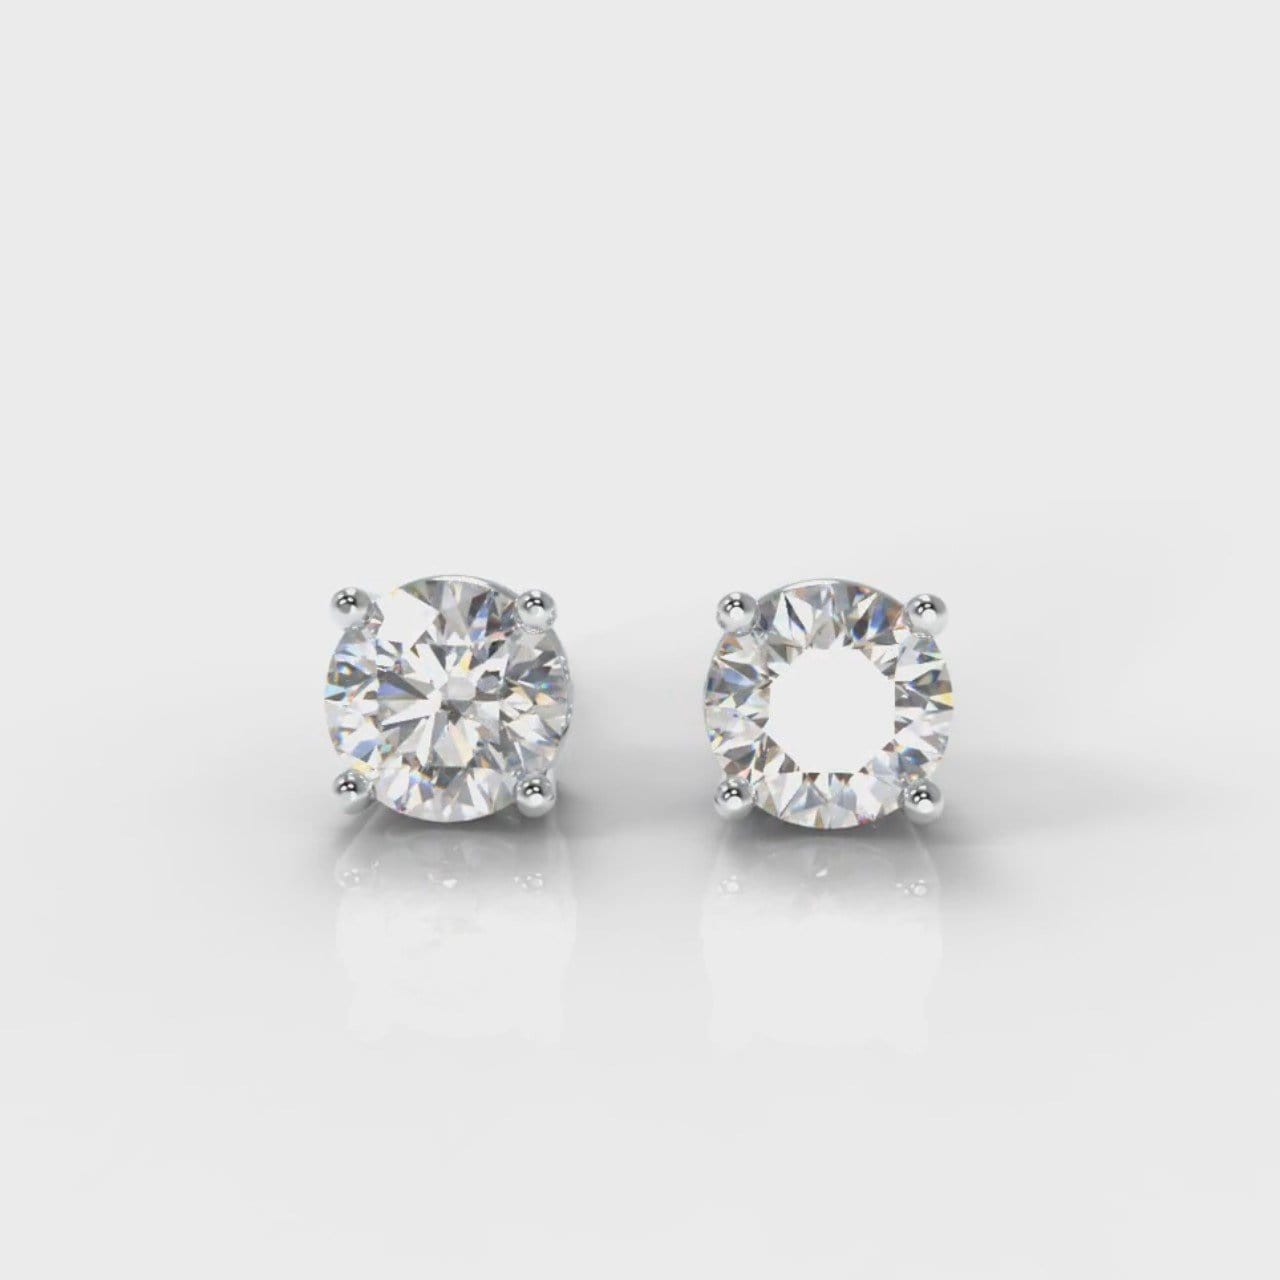 Four Claw Diamond Stud Earrings (GIA Certified)